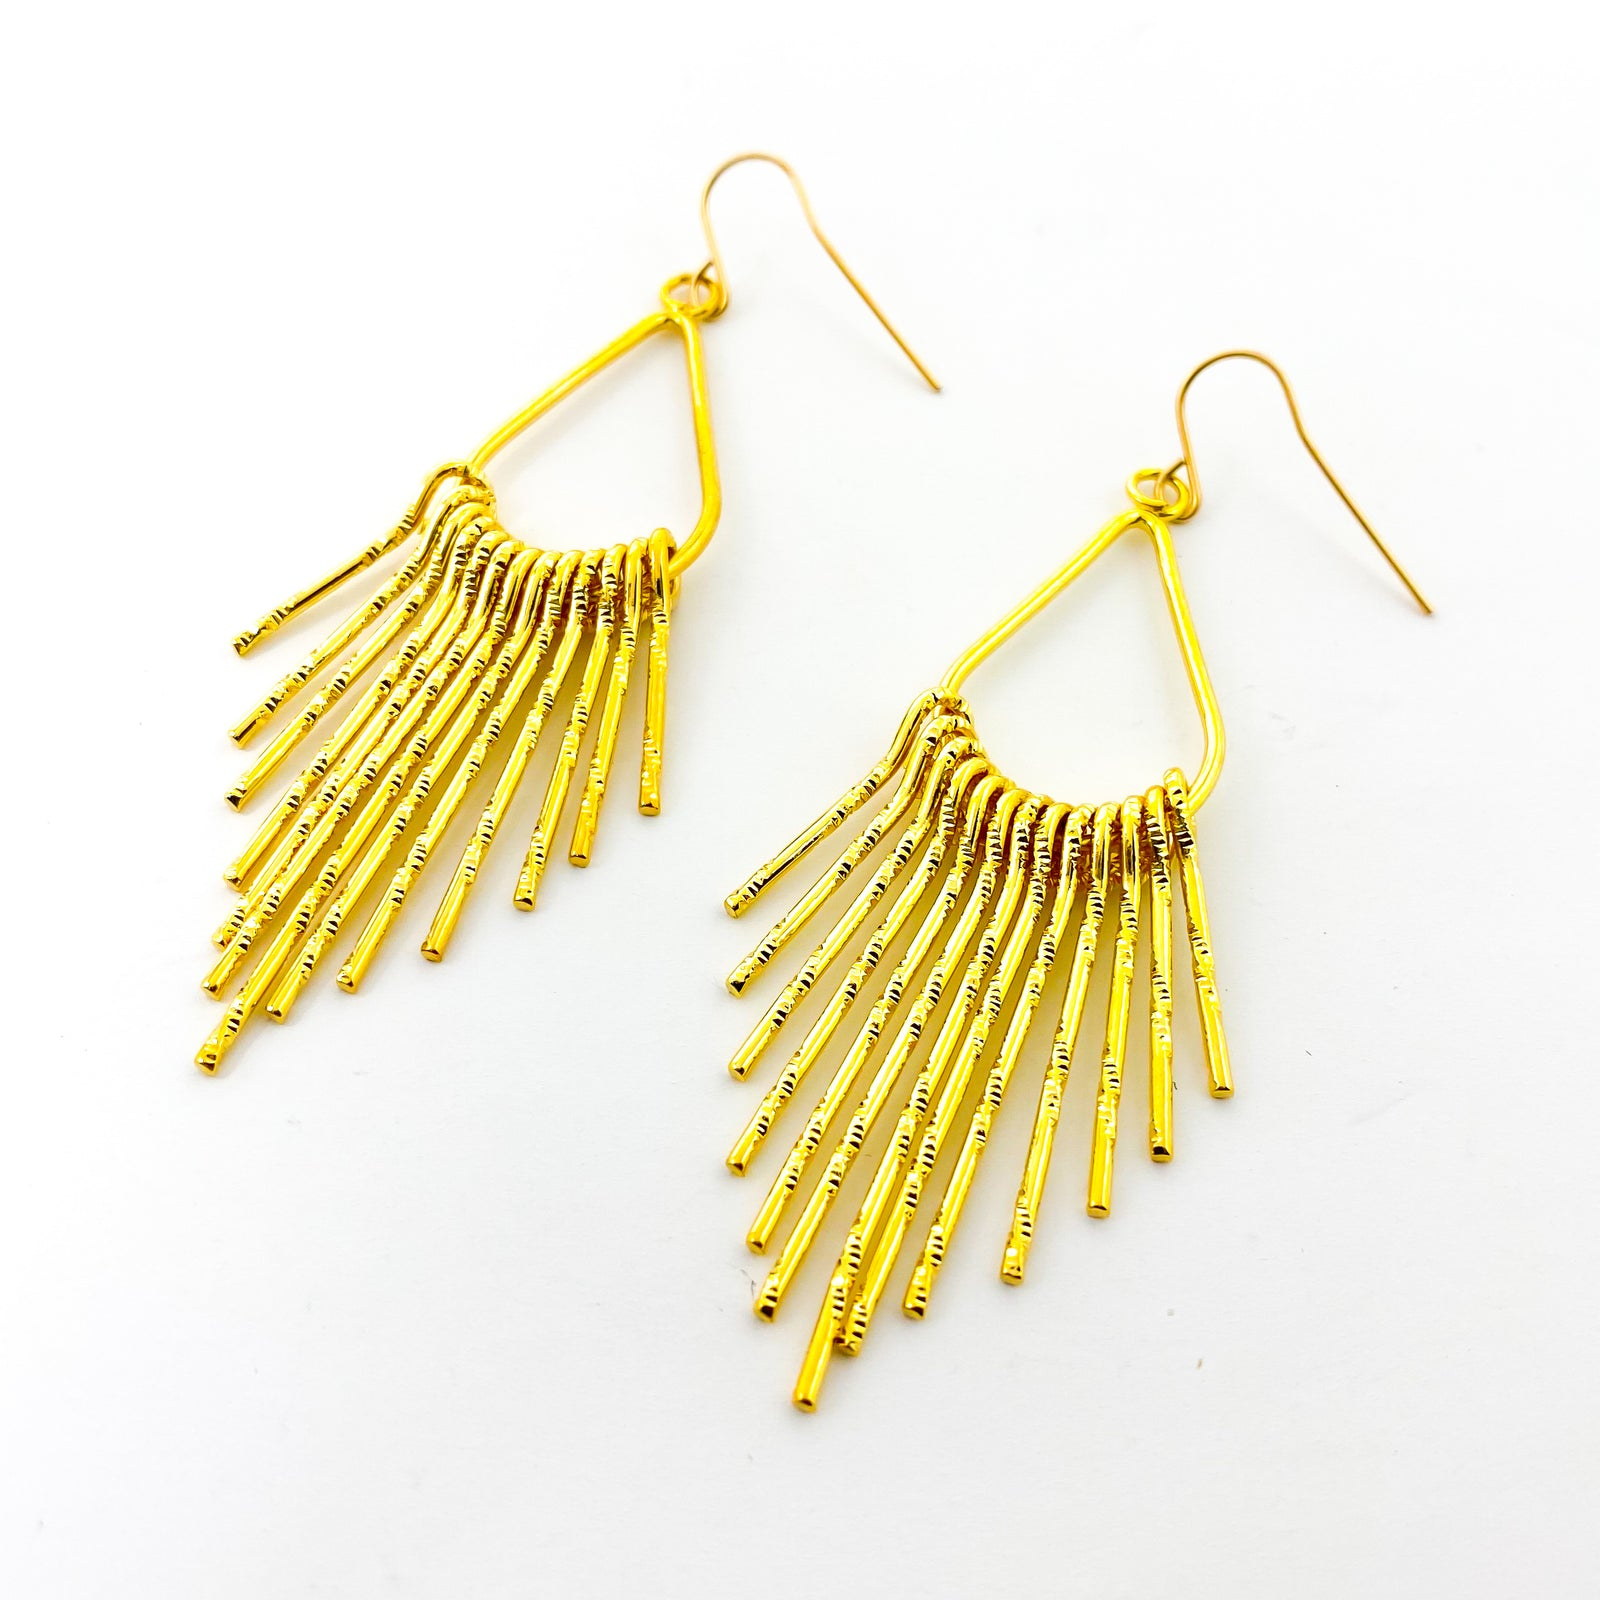 HANGING BAR FRINGE EARRINGS | STARDUST | 18K GOLD PLATED